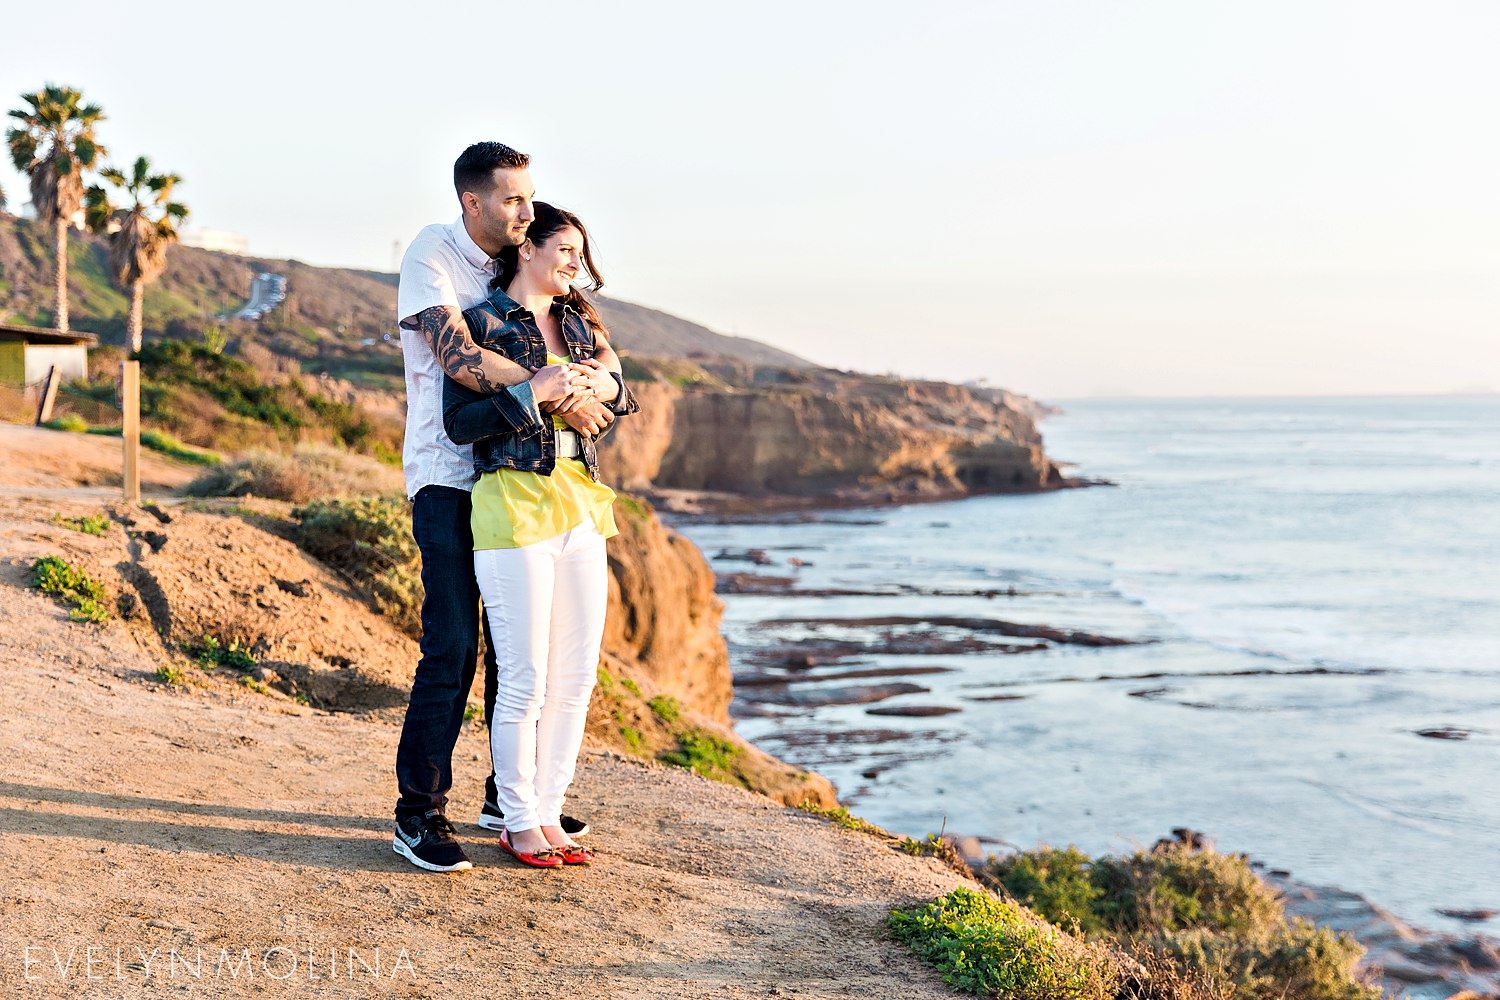 Sunset Cliffs Engagement Session - Carly and Alex - Evelyn Molina Photography_0014.jpg